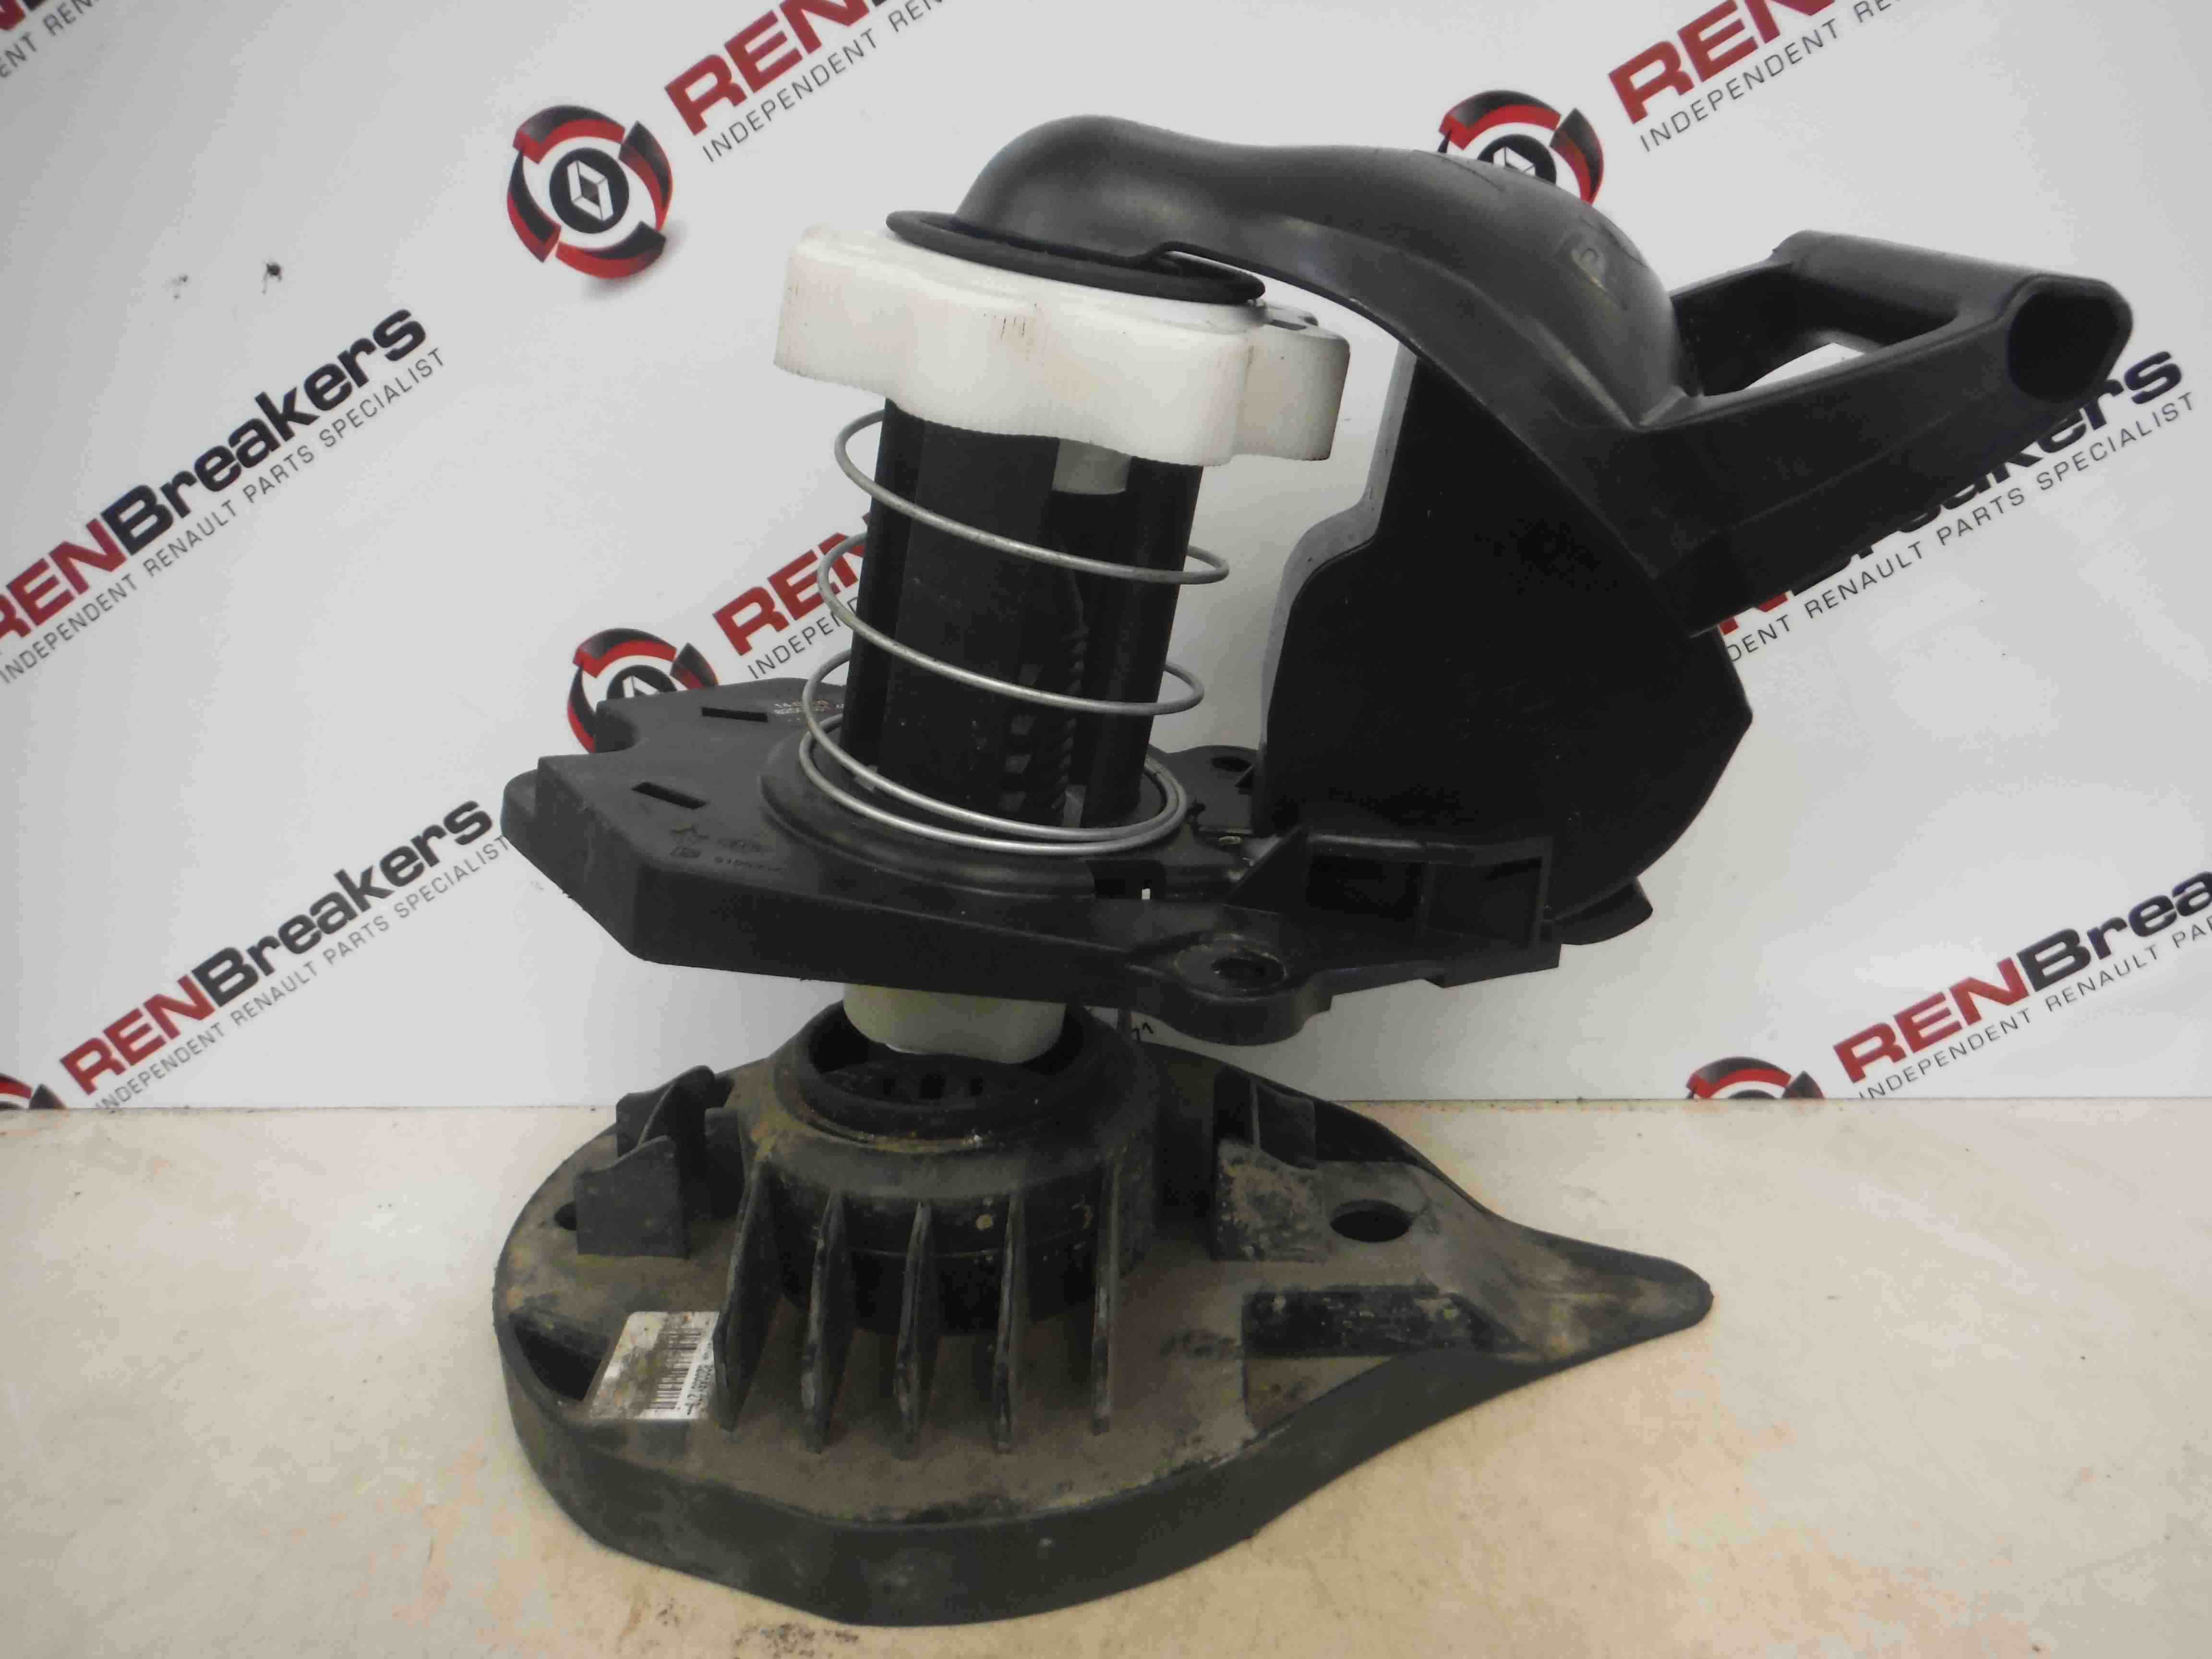 Renault Clio MK3 MK4 2005-2019 Boot Spare Wheel Winch Carrier Complete